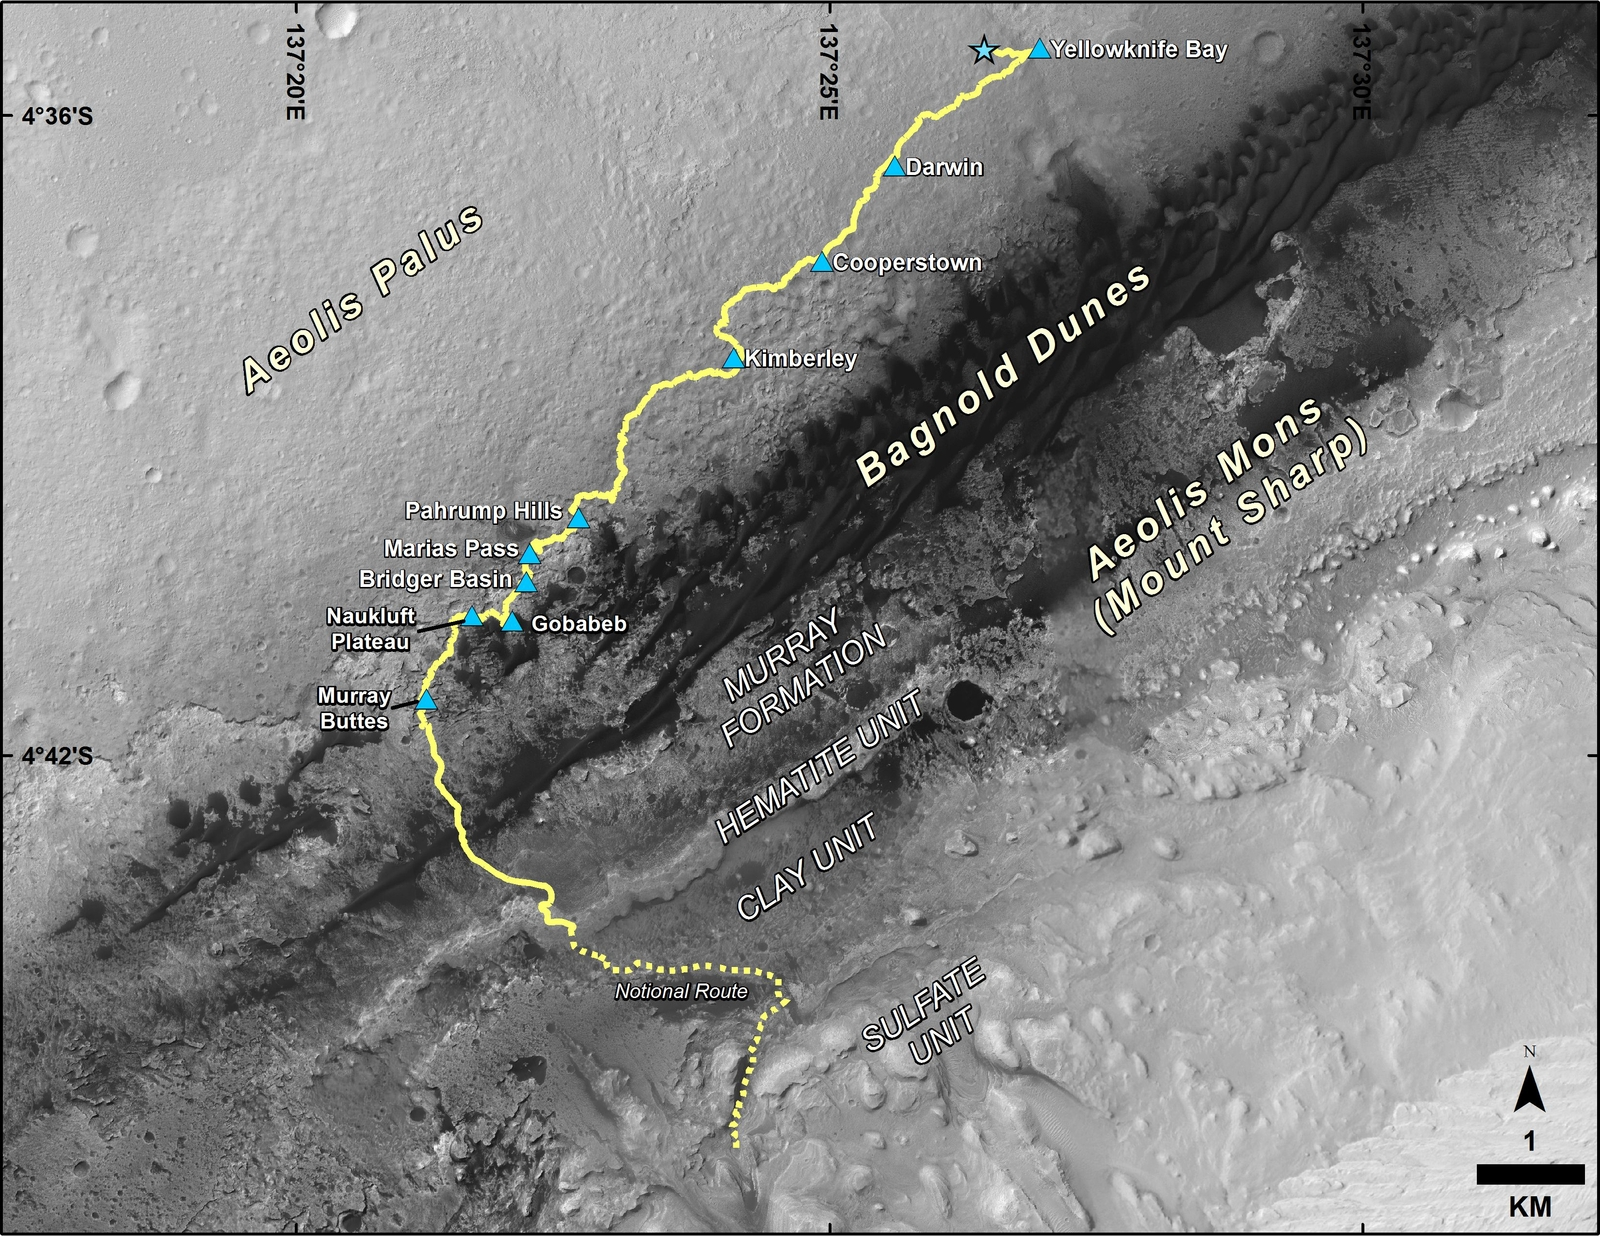 "This map shows the route driven by NASA's Curiosity Mars rover from the location where it landed in August 2012 to its location in September 2016 at ""Murray Buttes,"" and the path planned for reaching destinations at ""Hematite Unit"" and ""Clay Unit"" on lower Mount Sharp."